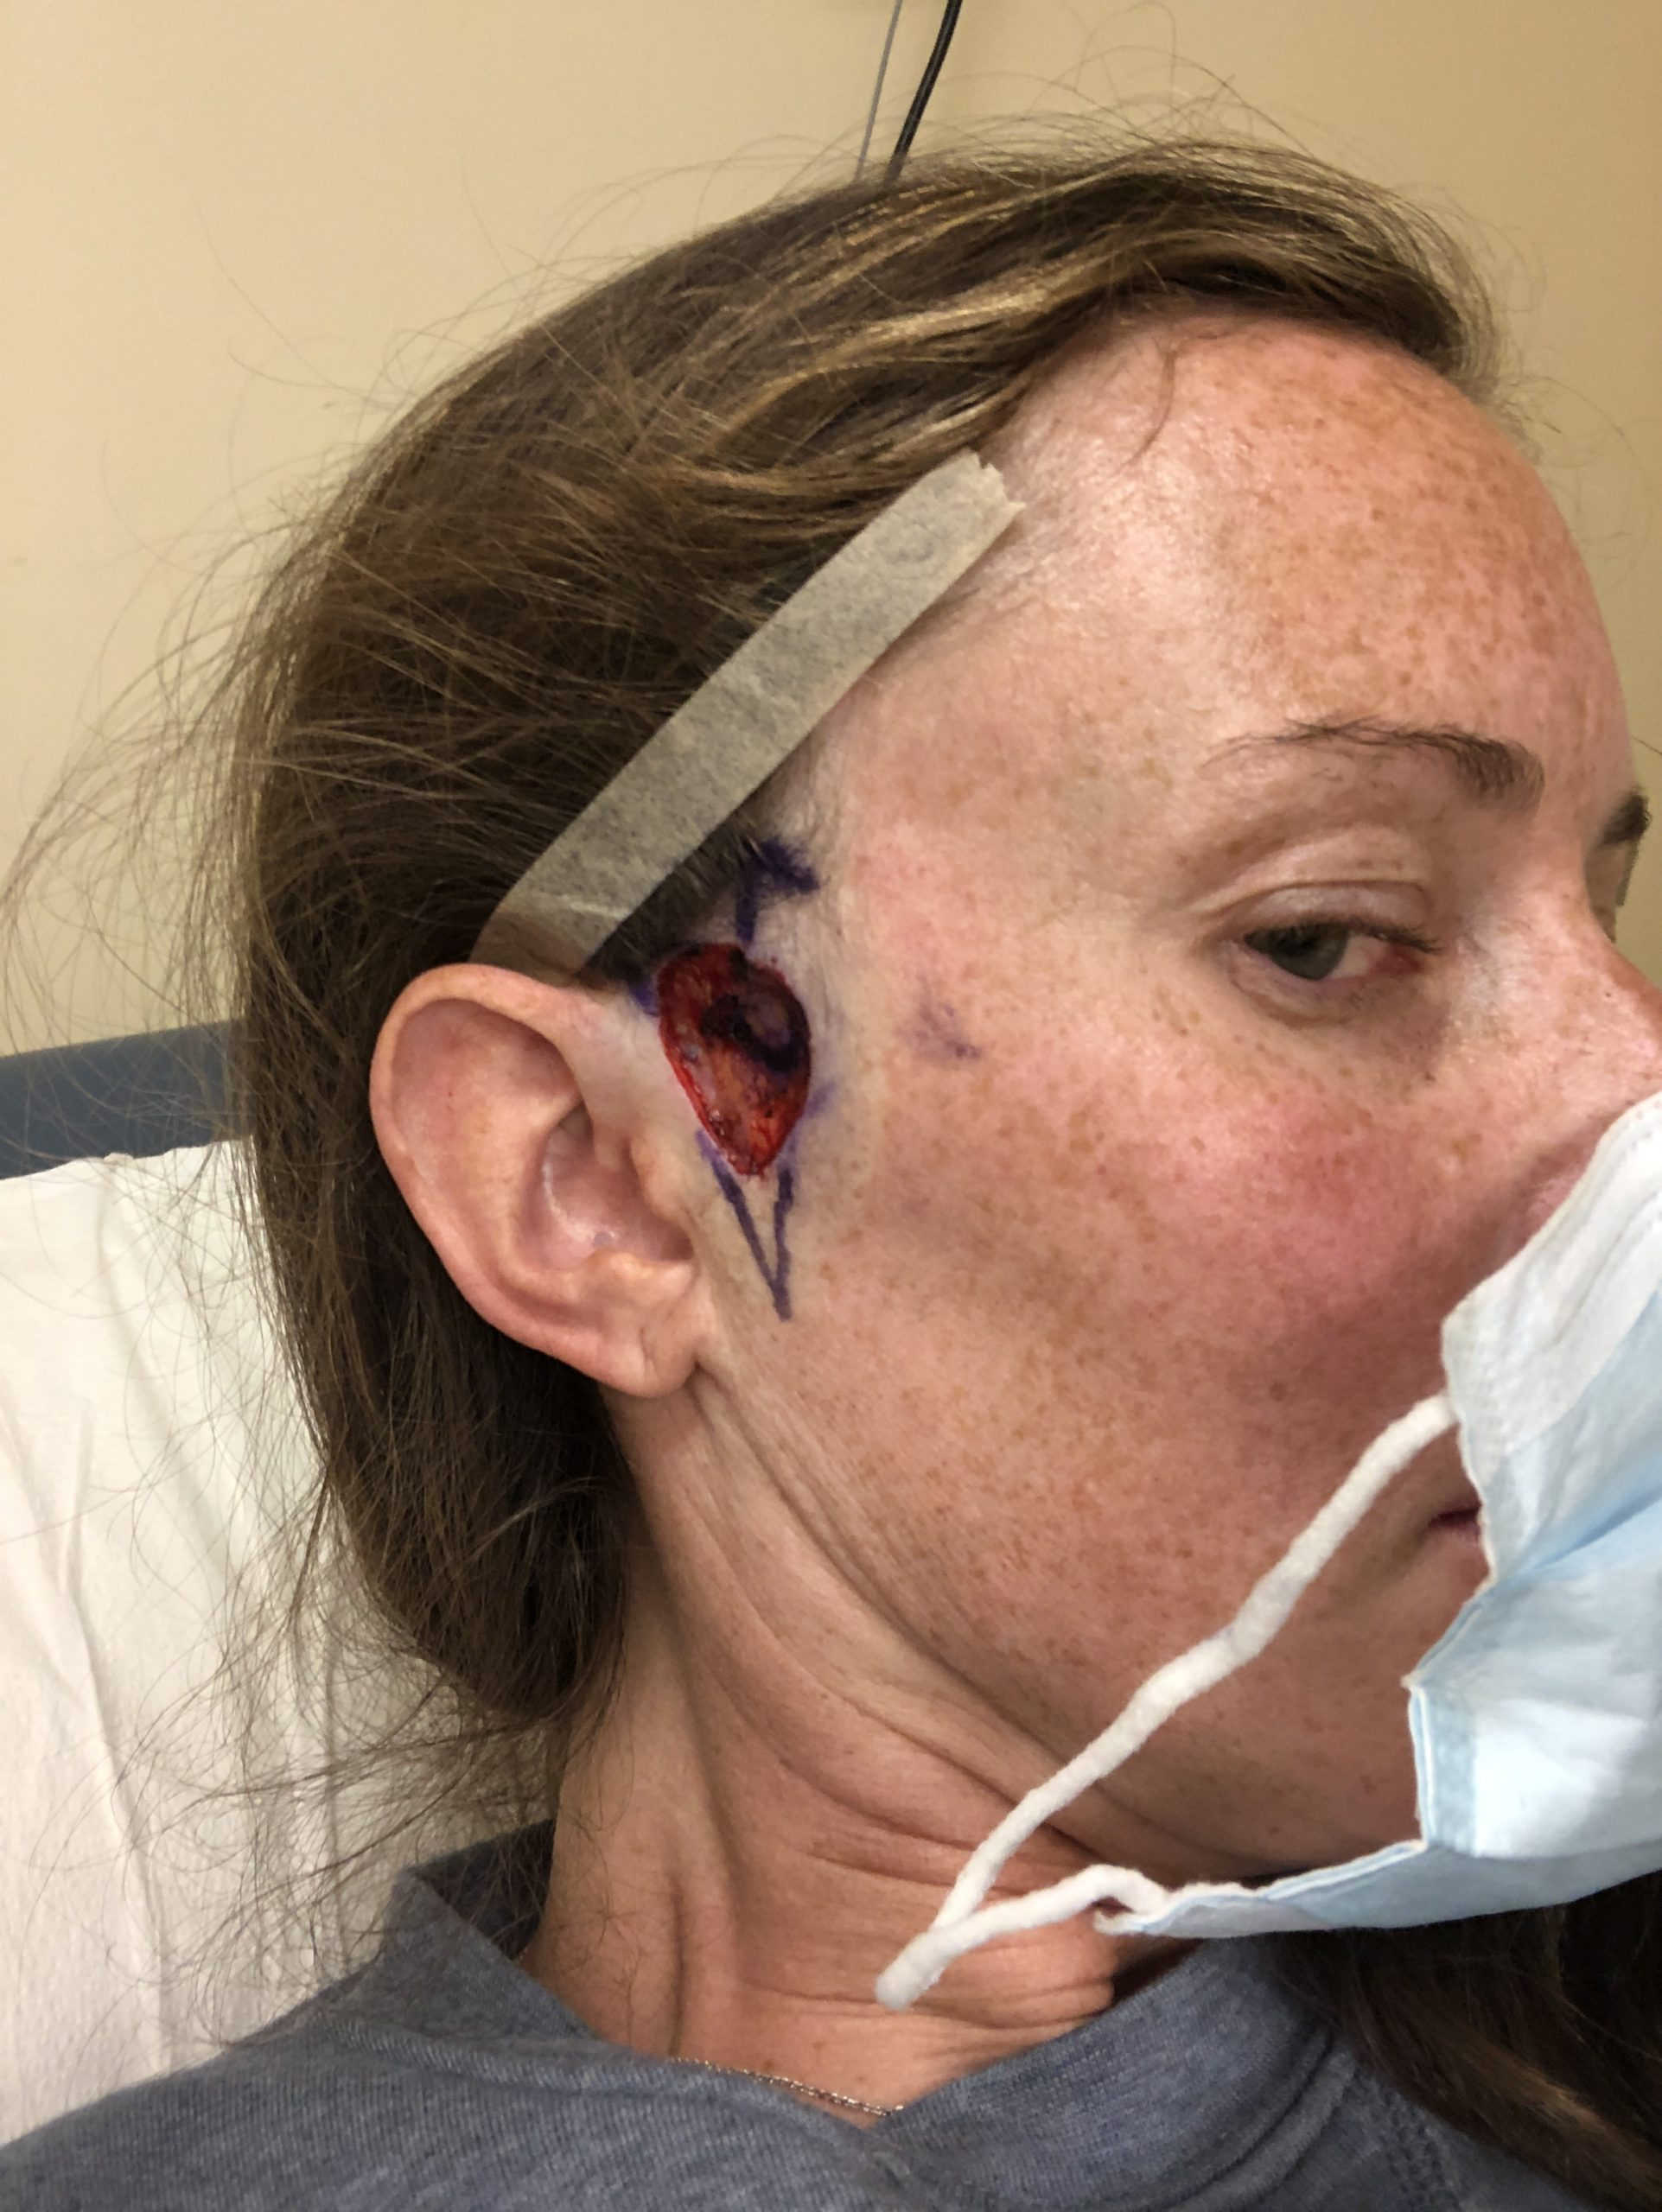 graphic mohs surgery open wound basal cell carcinoma